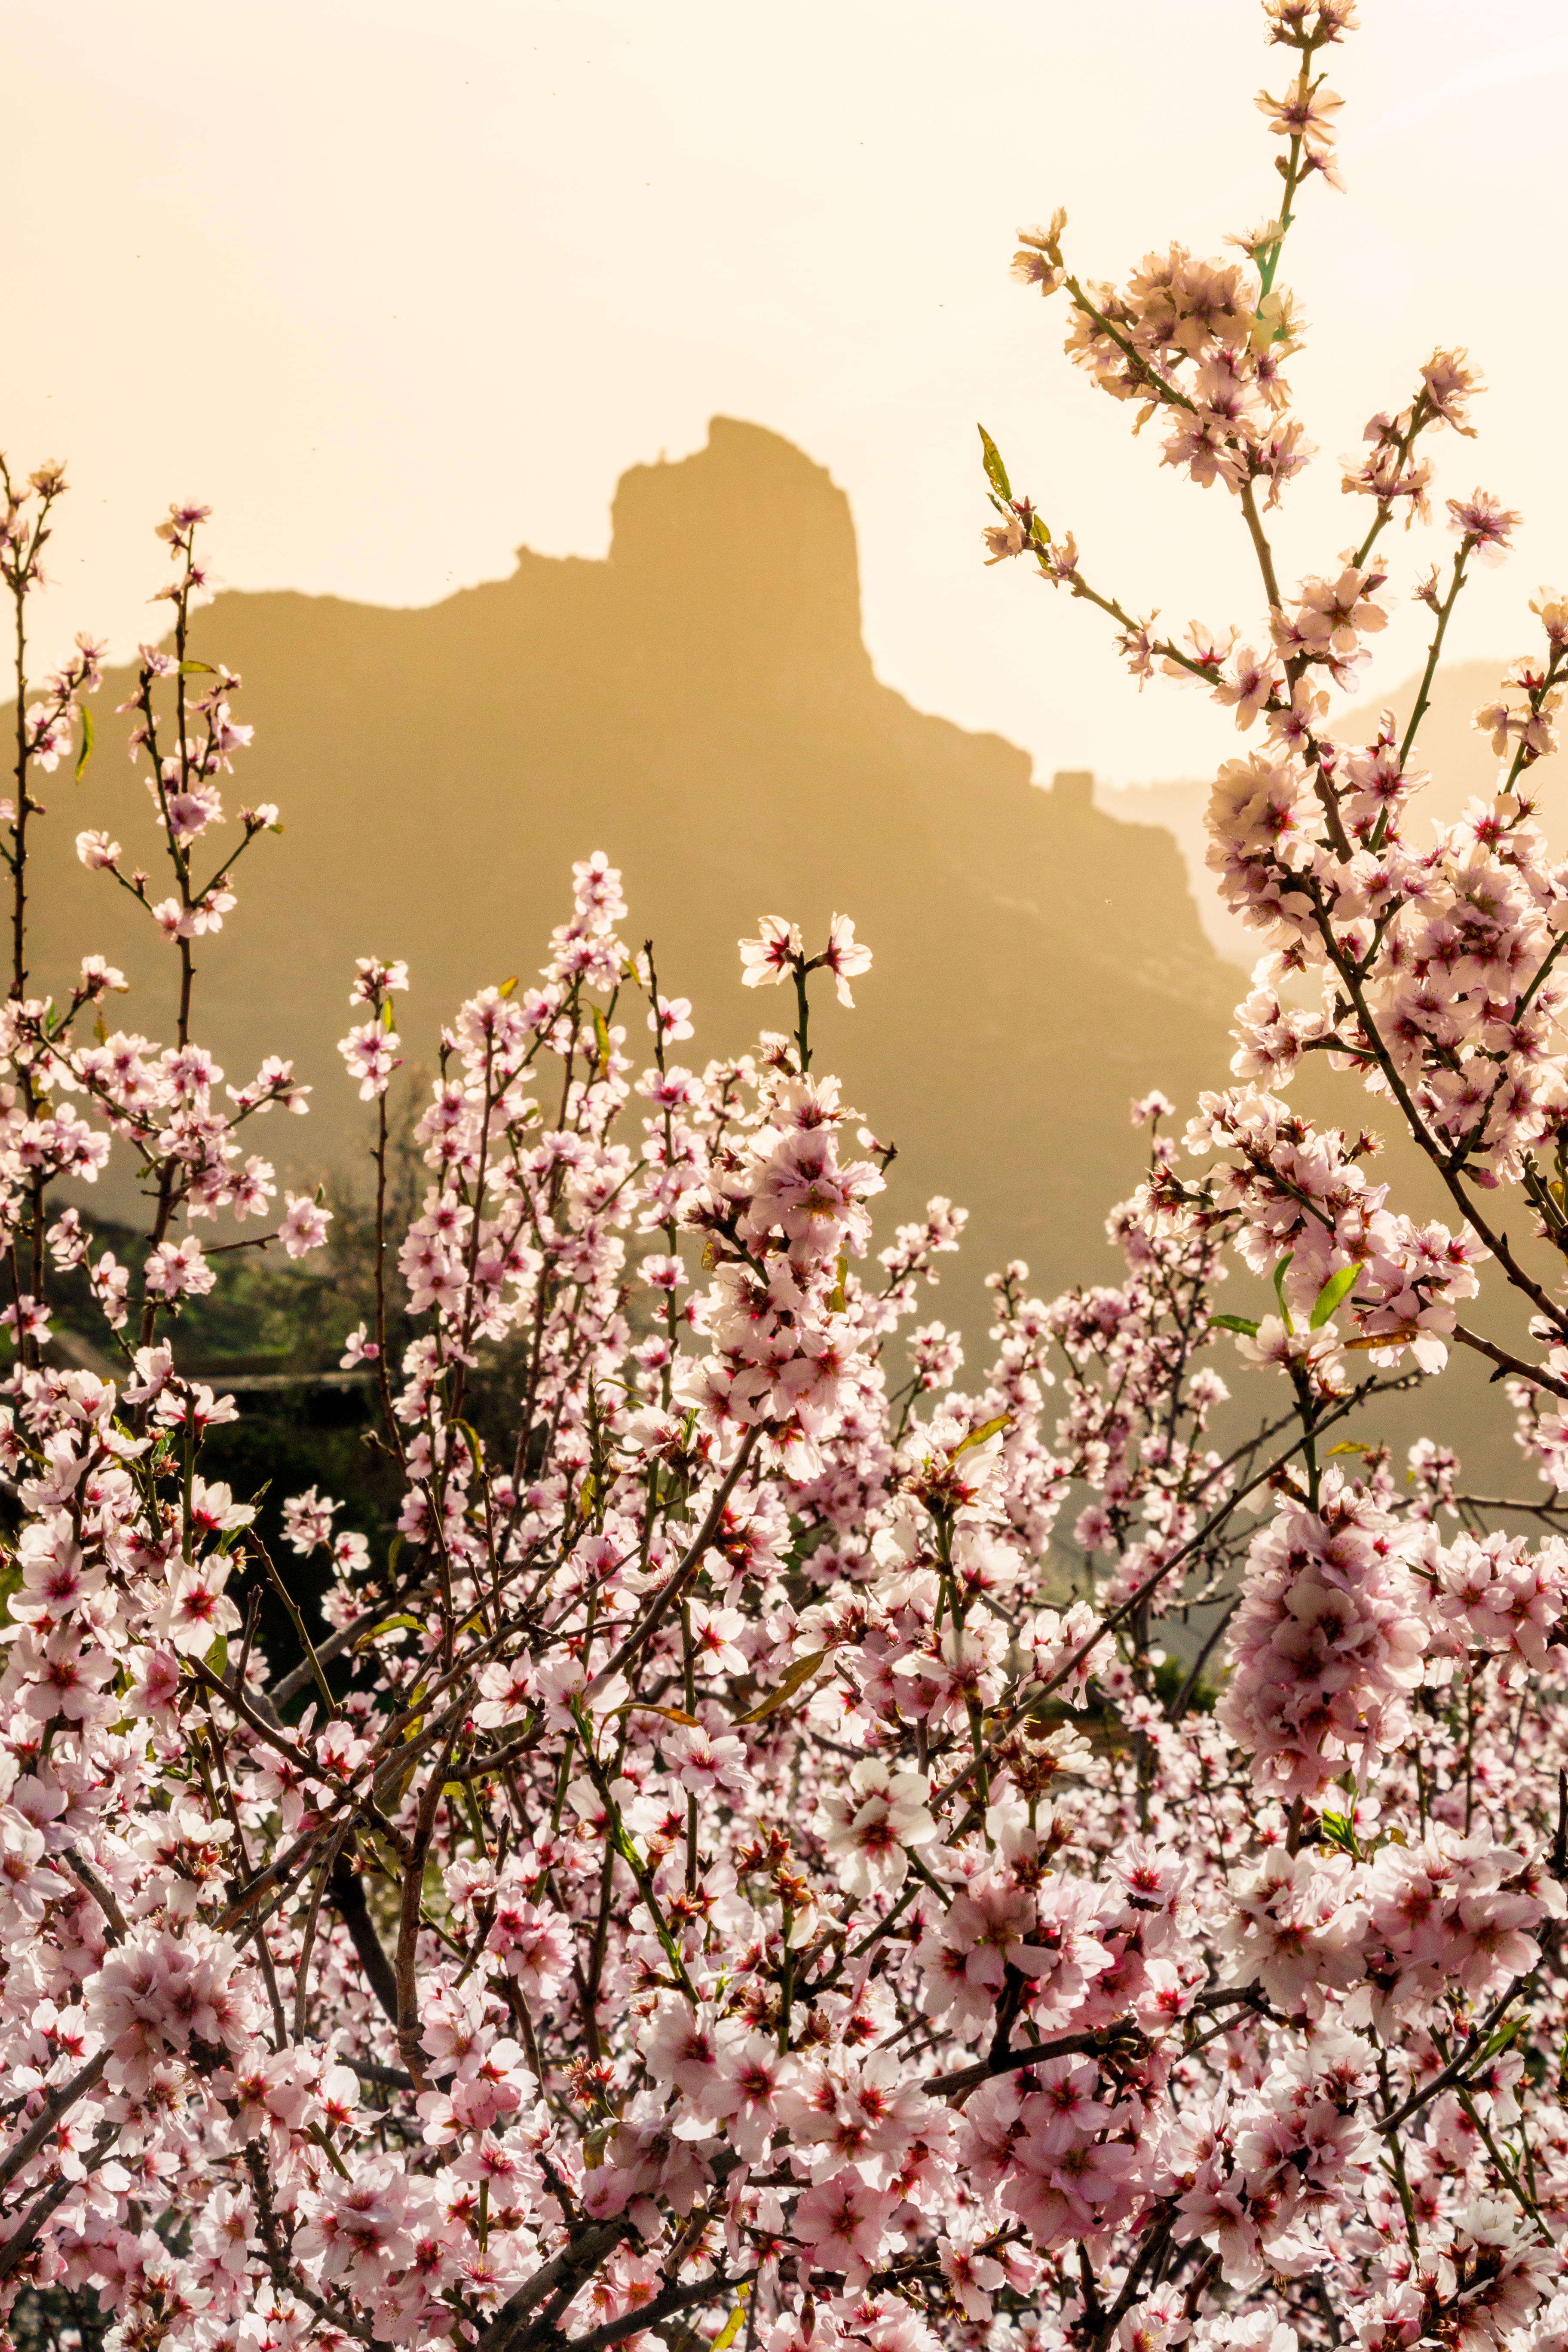 Almond blossom in front of Bentayga rock